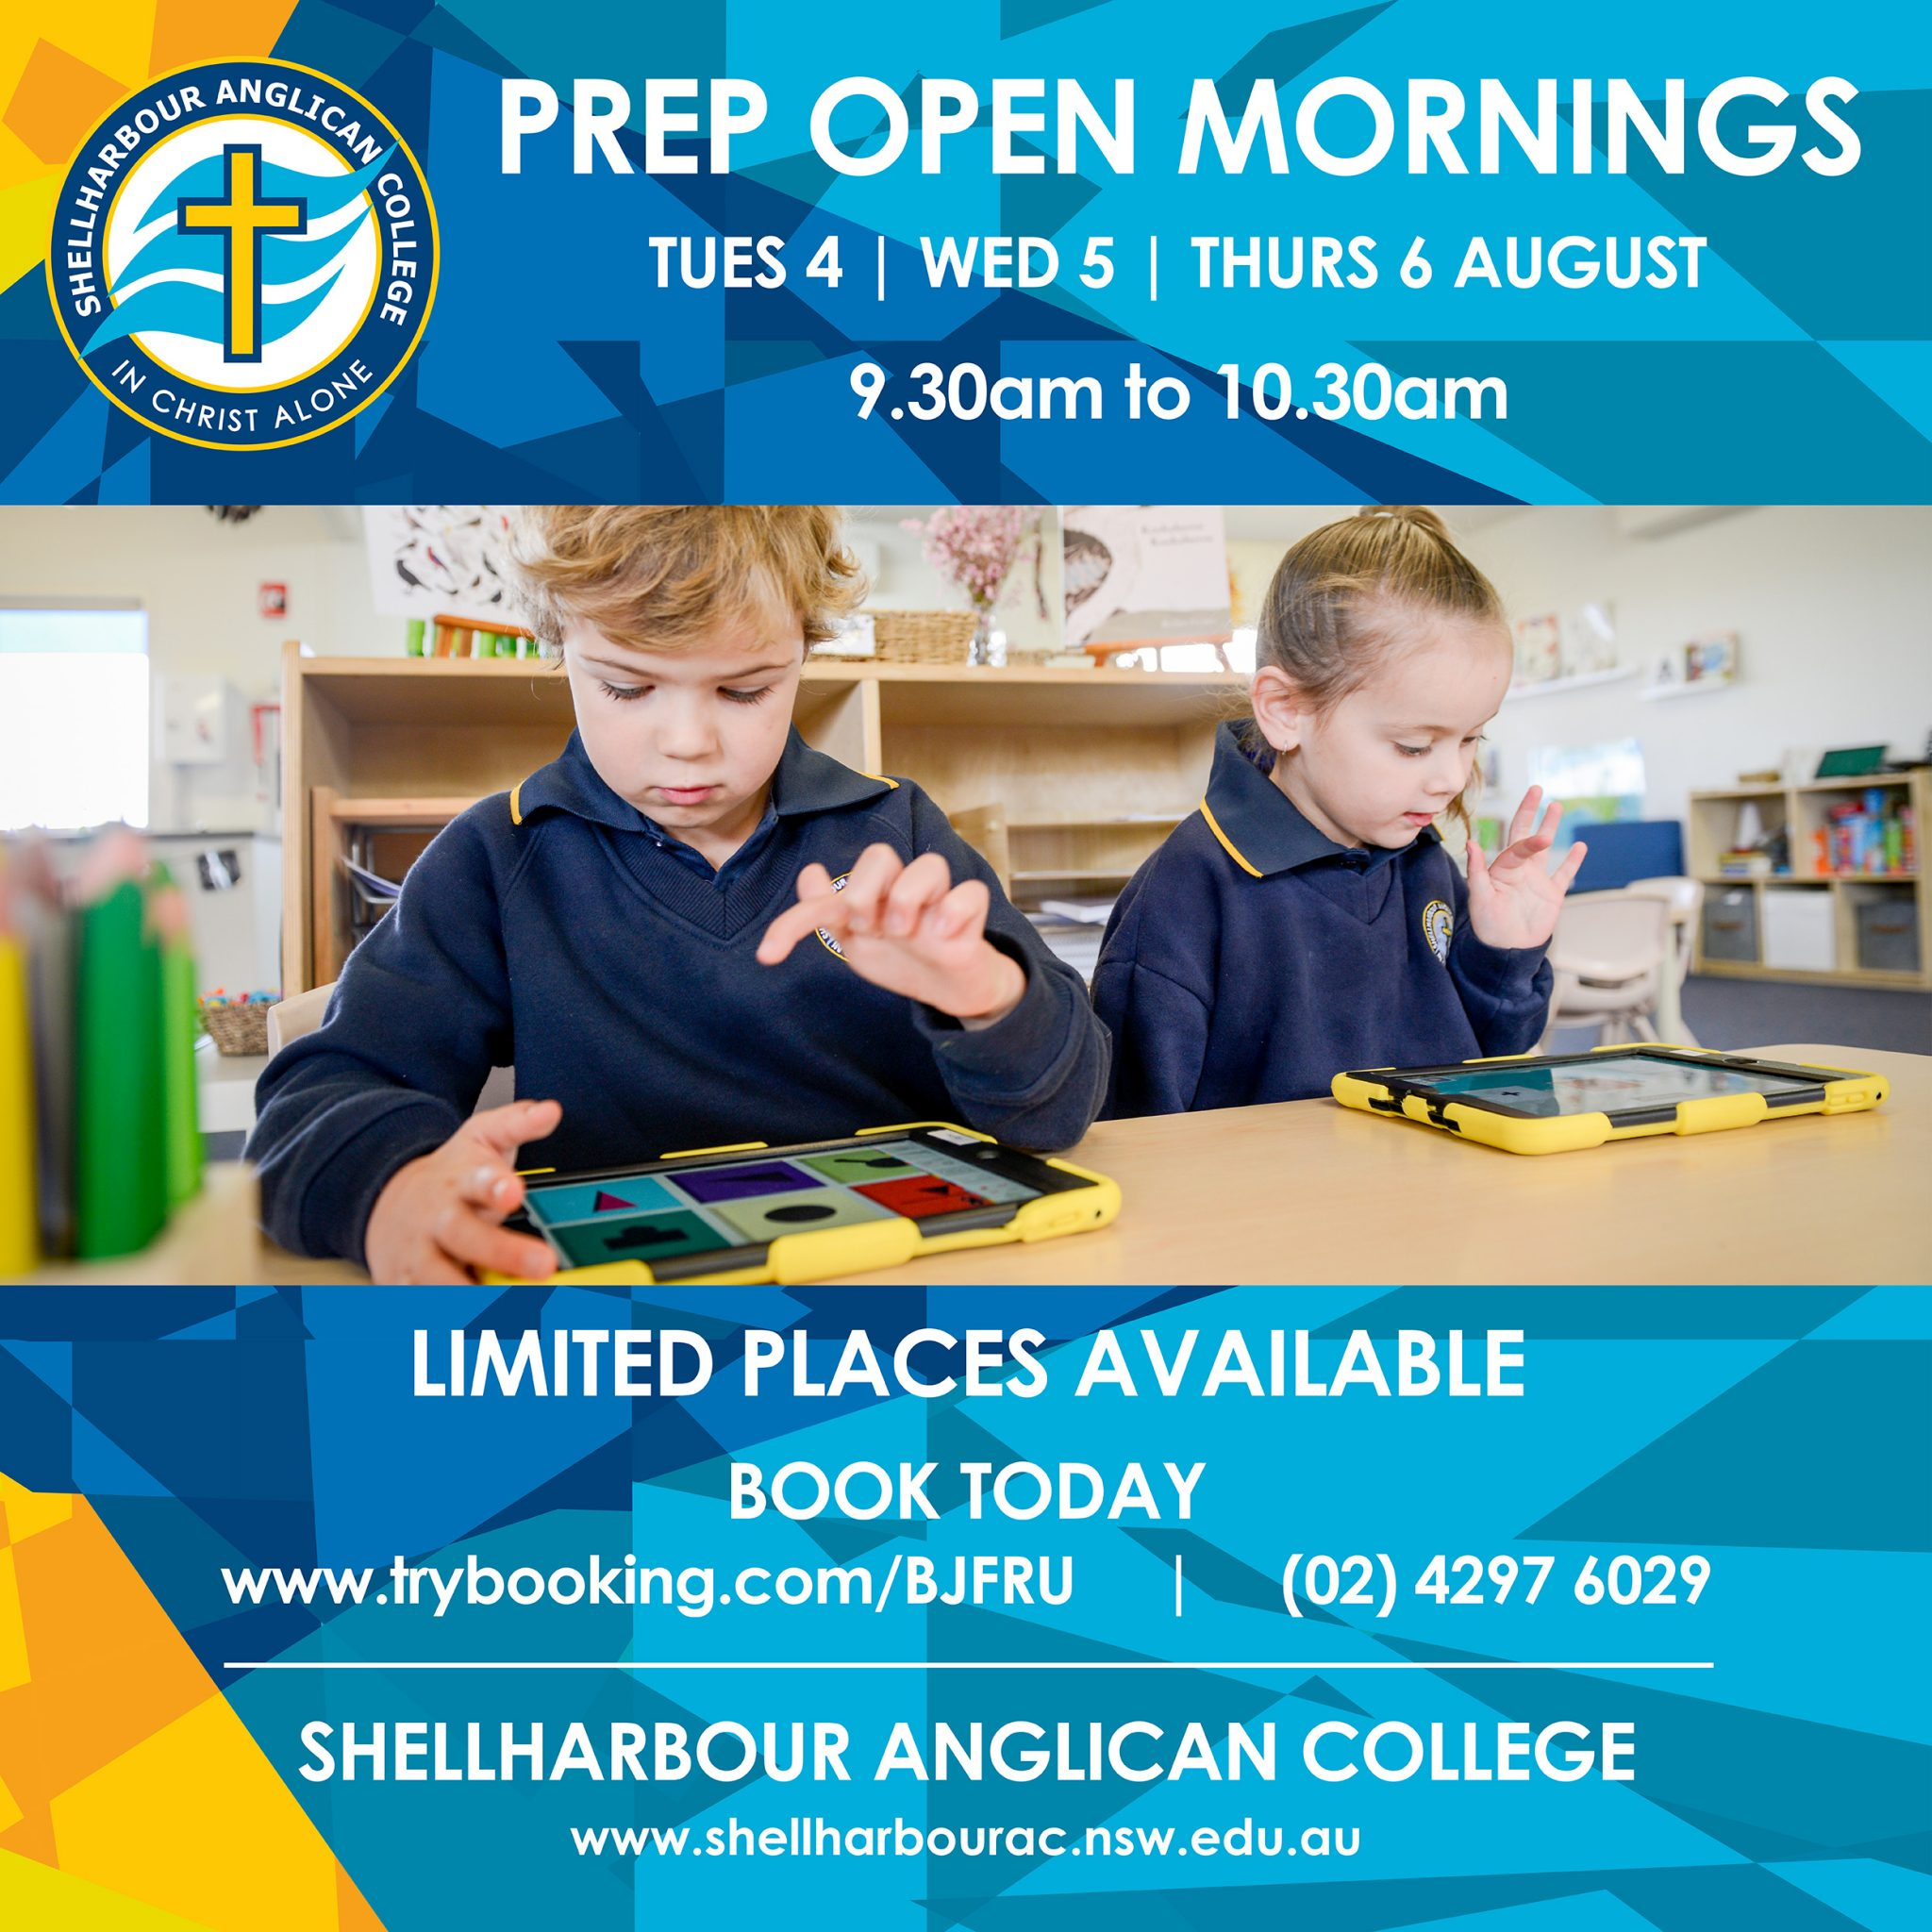 Prep Open Morning – Limited places in August!